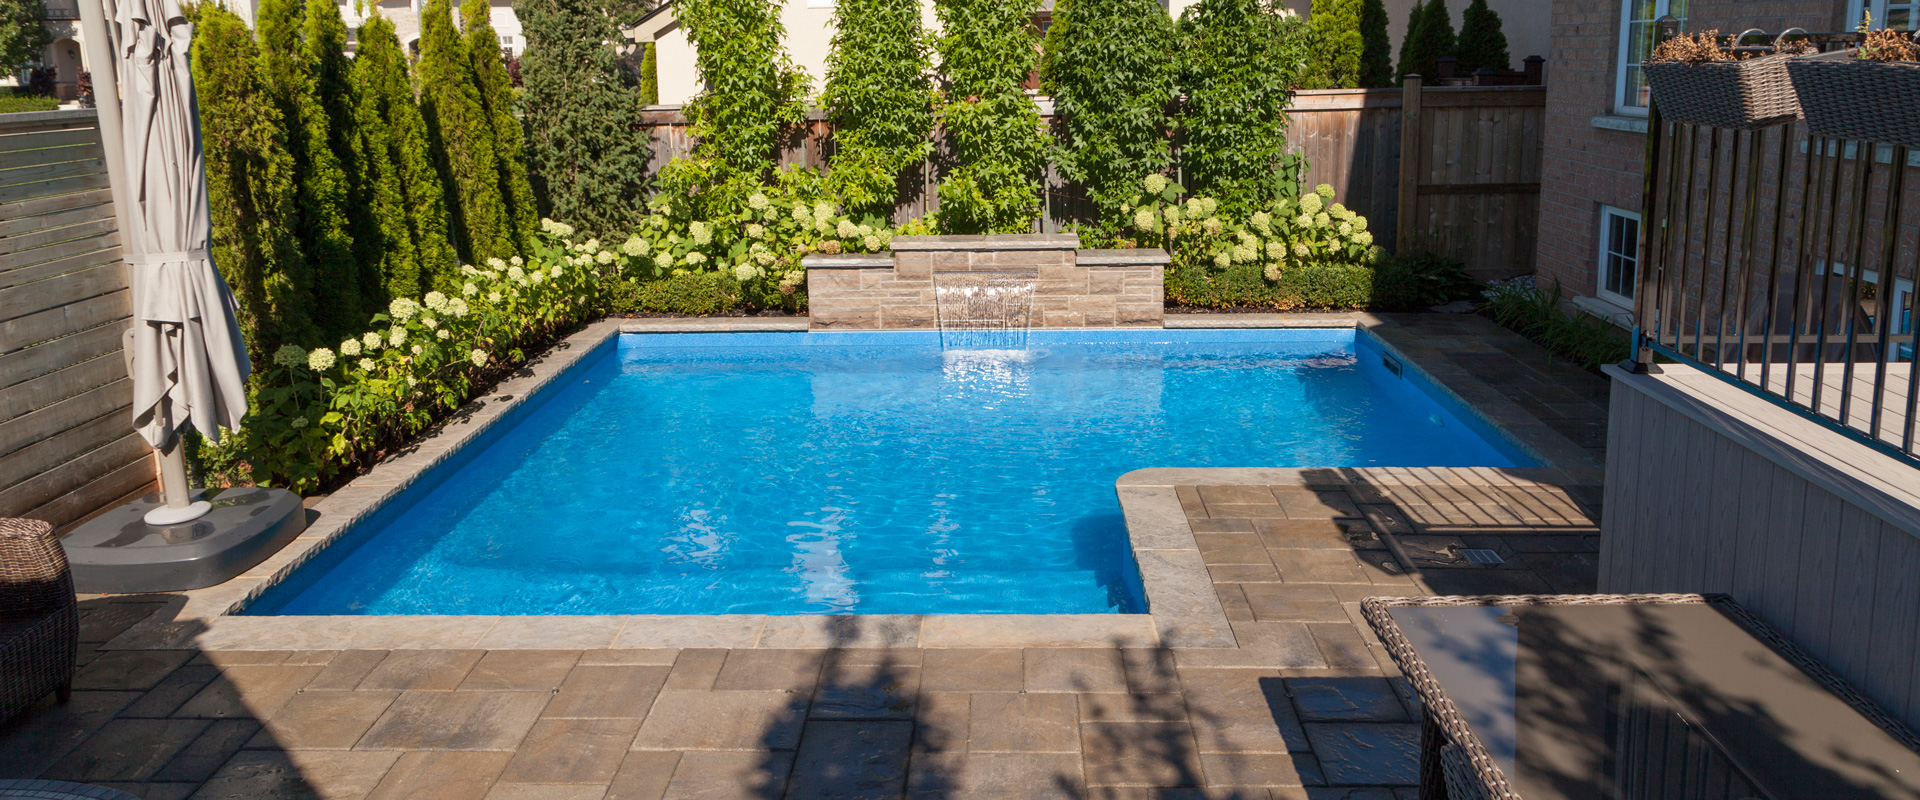 The Mcarters Inground Pool Showcase Boldt Pools Amp Spas